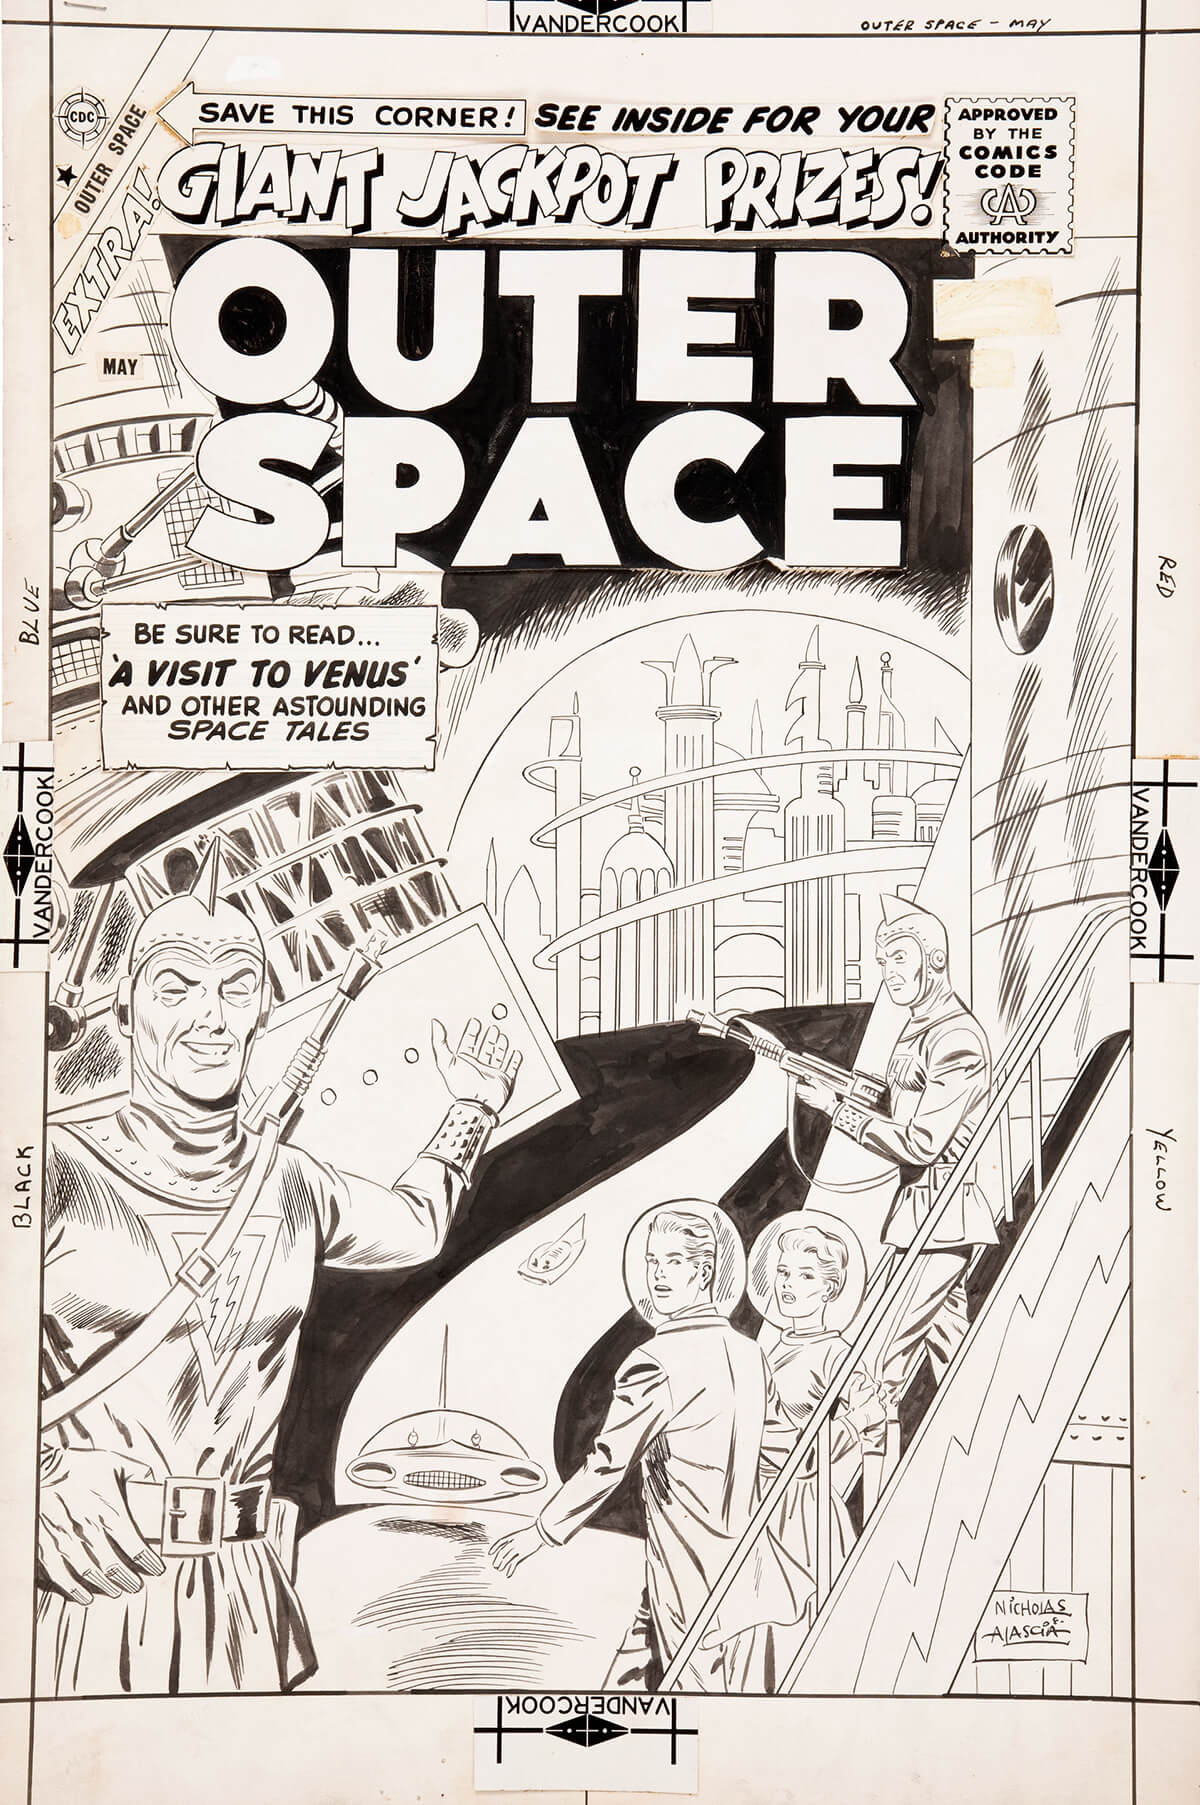 Outer Space 22 Cover by Charles Nicholas Wojtkoski and Vince Alascia